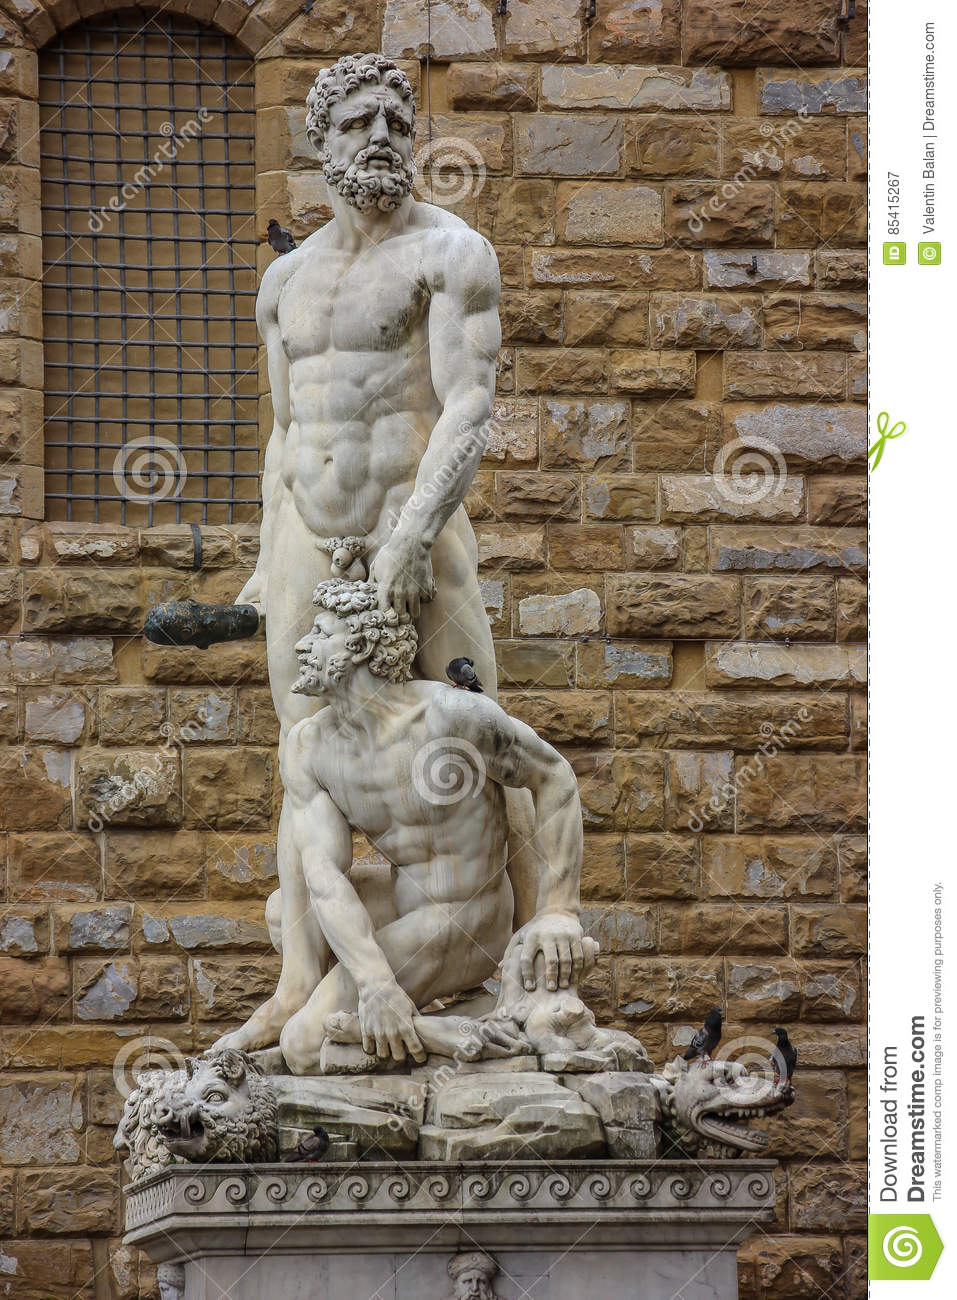 Statue Of Hercules And Cacus By Baccio Bandinelli. Stock Photo.